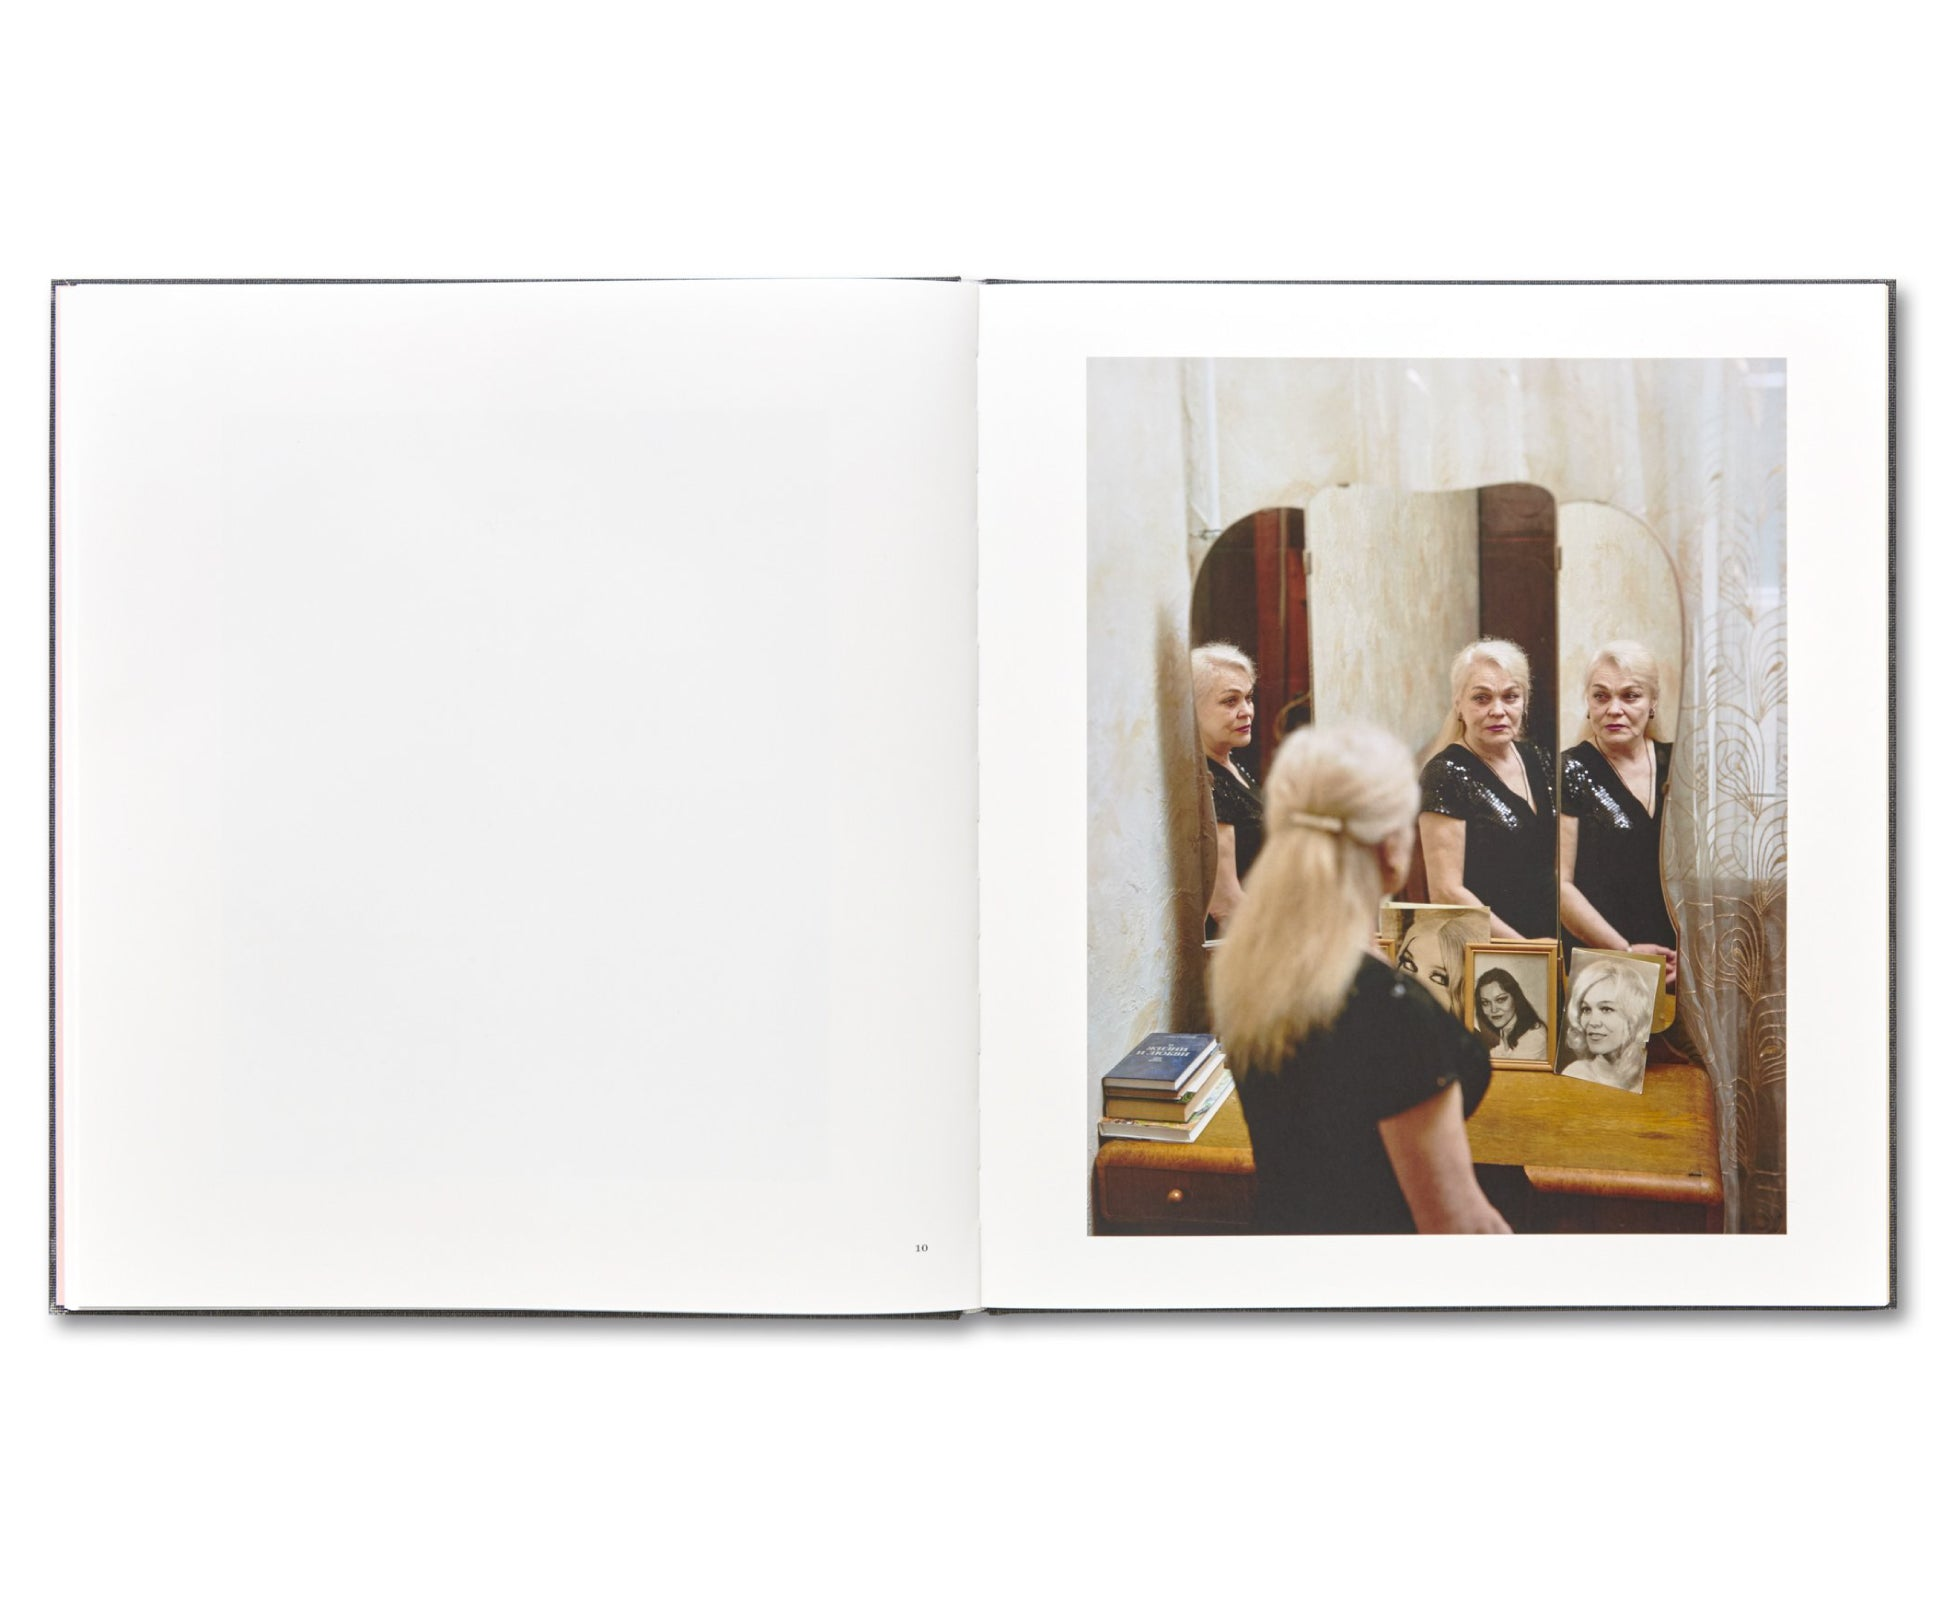 I KNOW HOW FURIOUSLY YOUR HEART IS BEATING by Alec Soth [SPECIAL EDITION (B)]